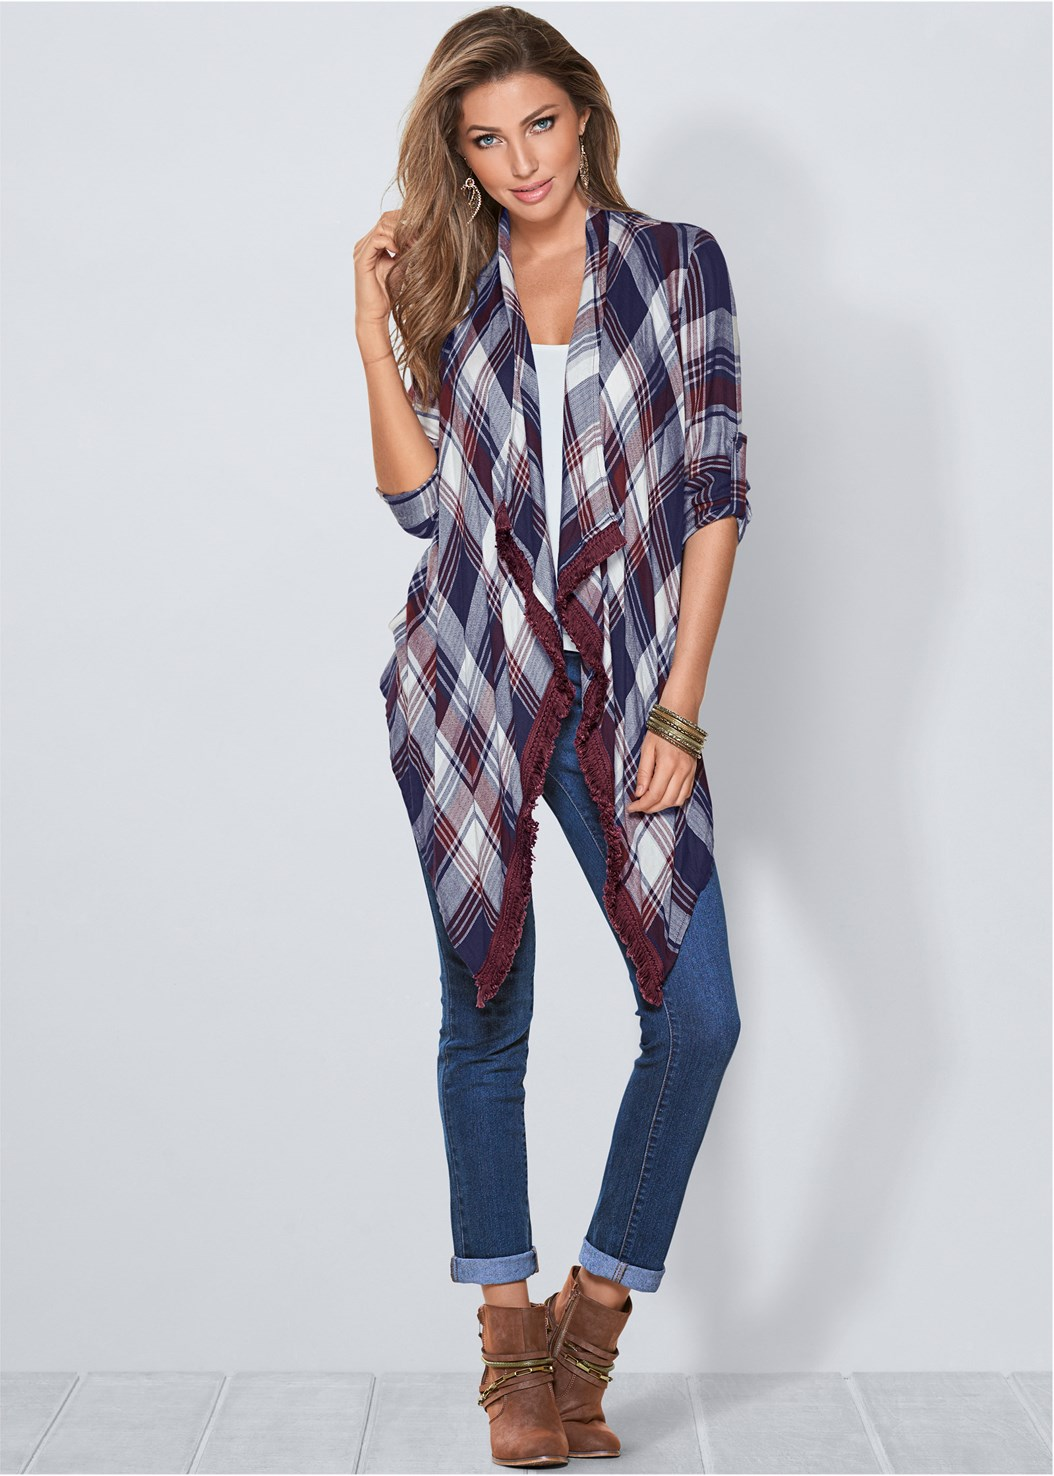 Plaid And Fringe Cardigan,Basic Cami Two Pack,Lace Cami,Mid Rise Color Skinny Jeans,Sweater Trim Boot